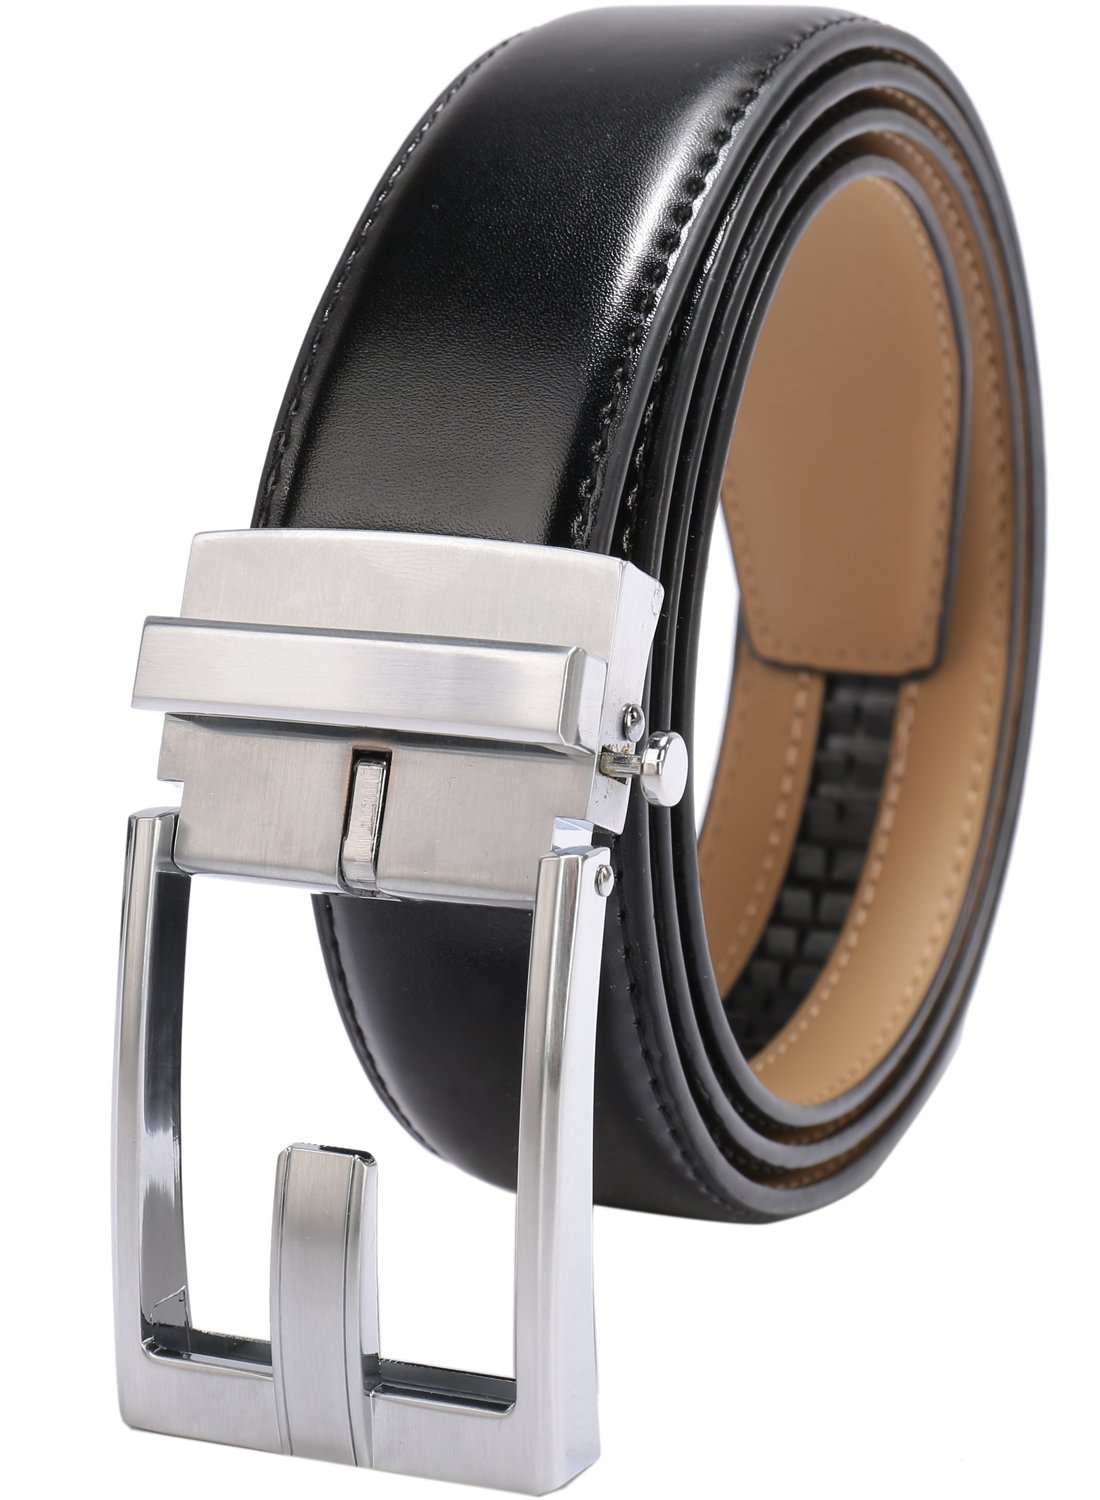 Beltox Fine Men's Ratchet Dress Leather Belt with Automatic Buckle in Gift Box (Waist size up to 54, Dual-use Silver Buckle) …